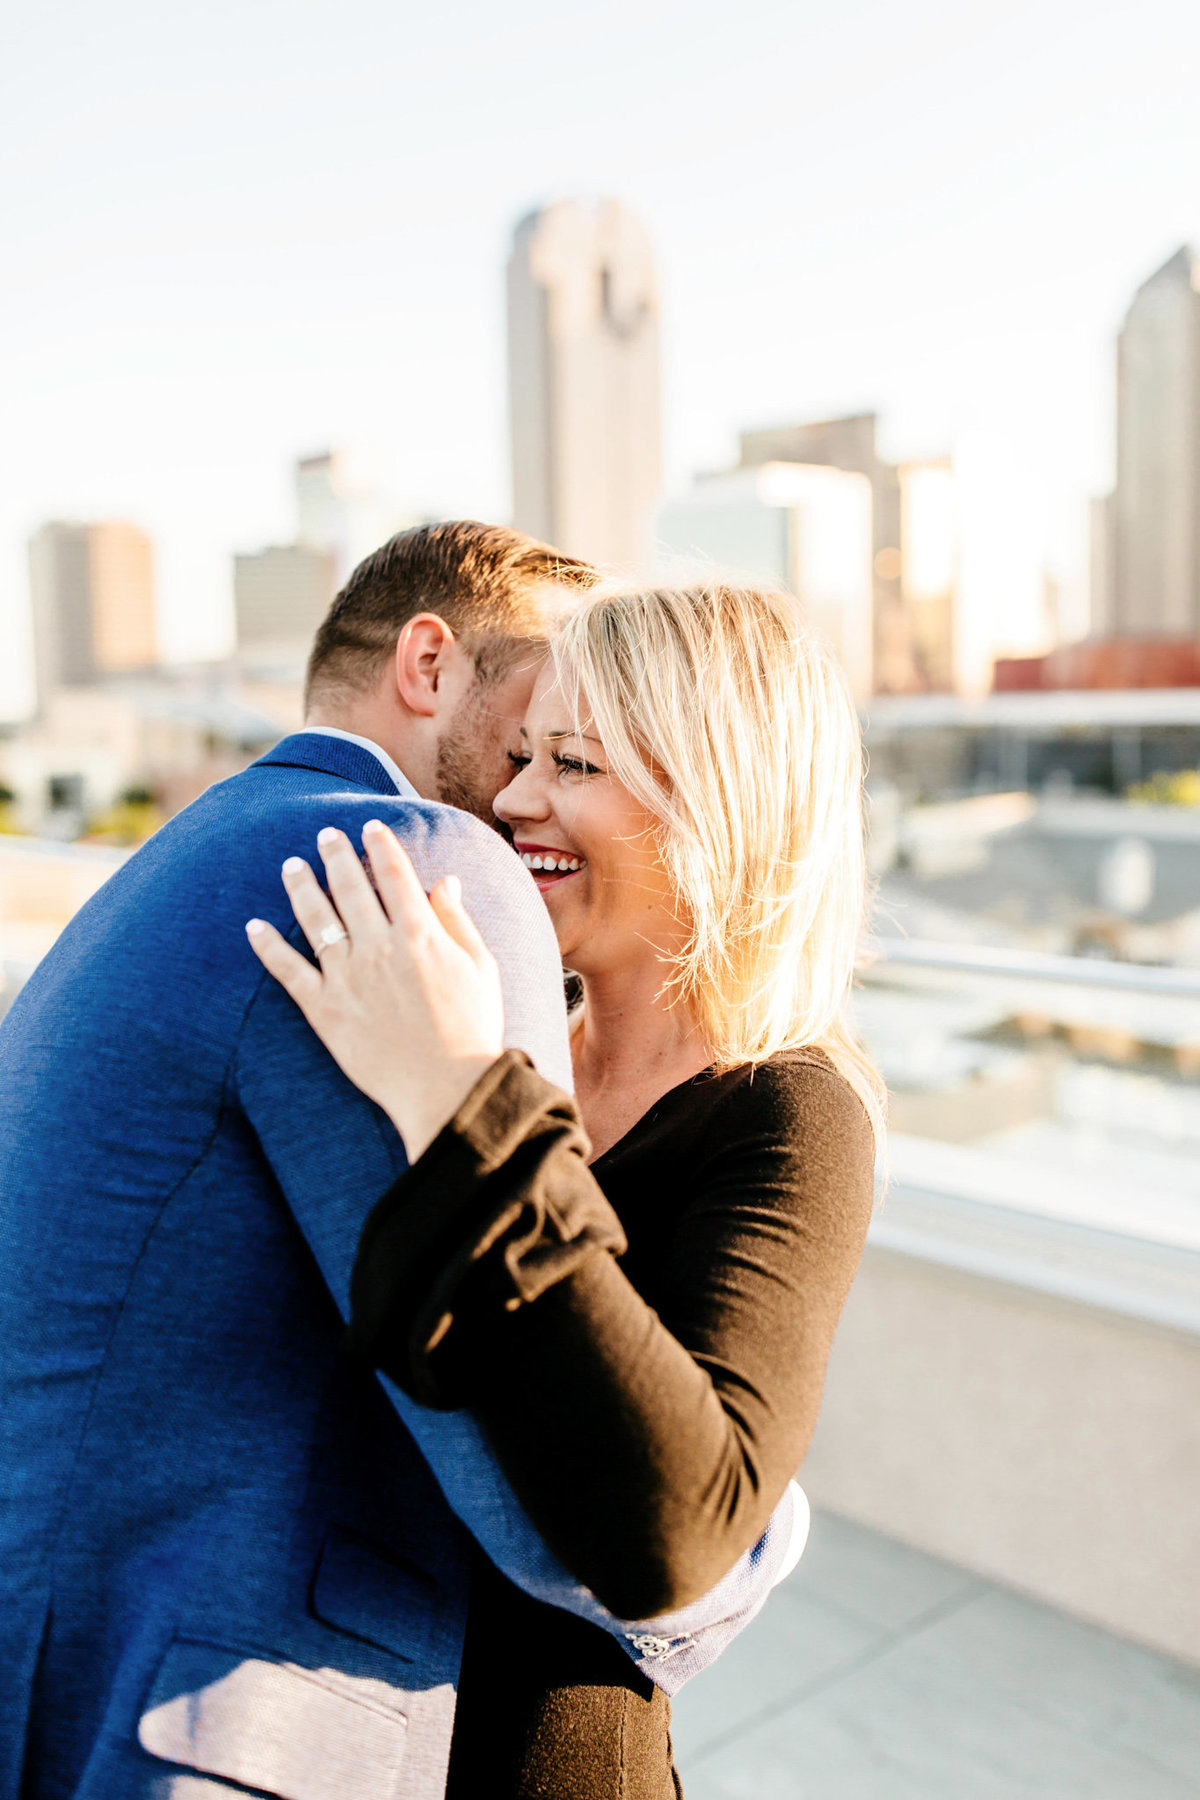 Eric & Megan - Downtown Dallas Rooftop Proposal & Engagement Session-73